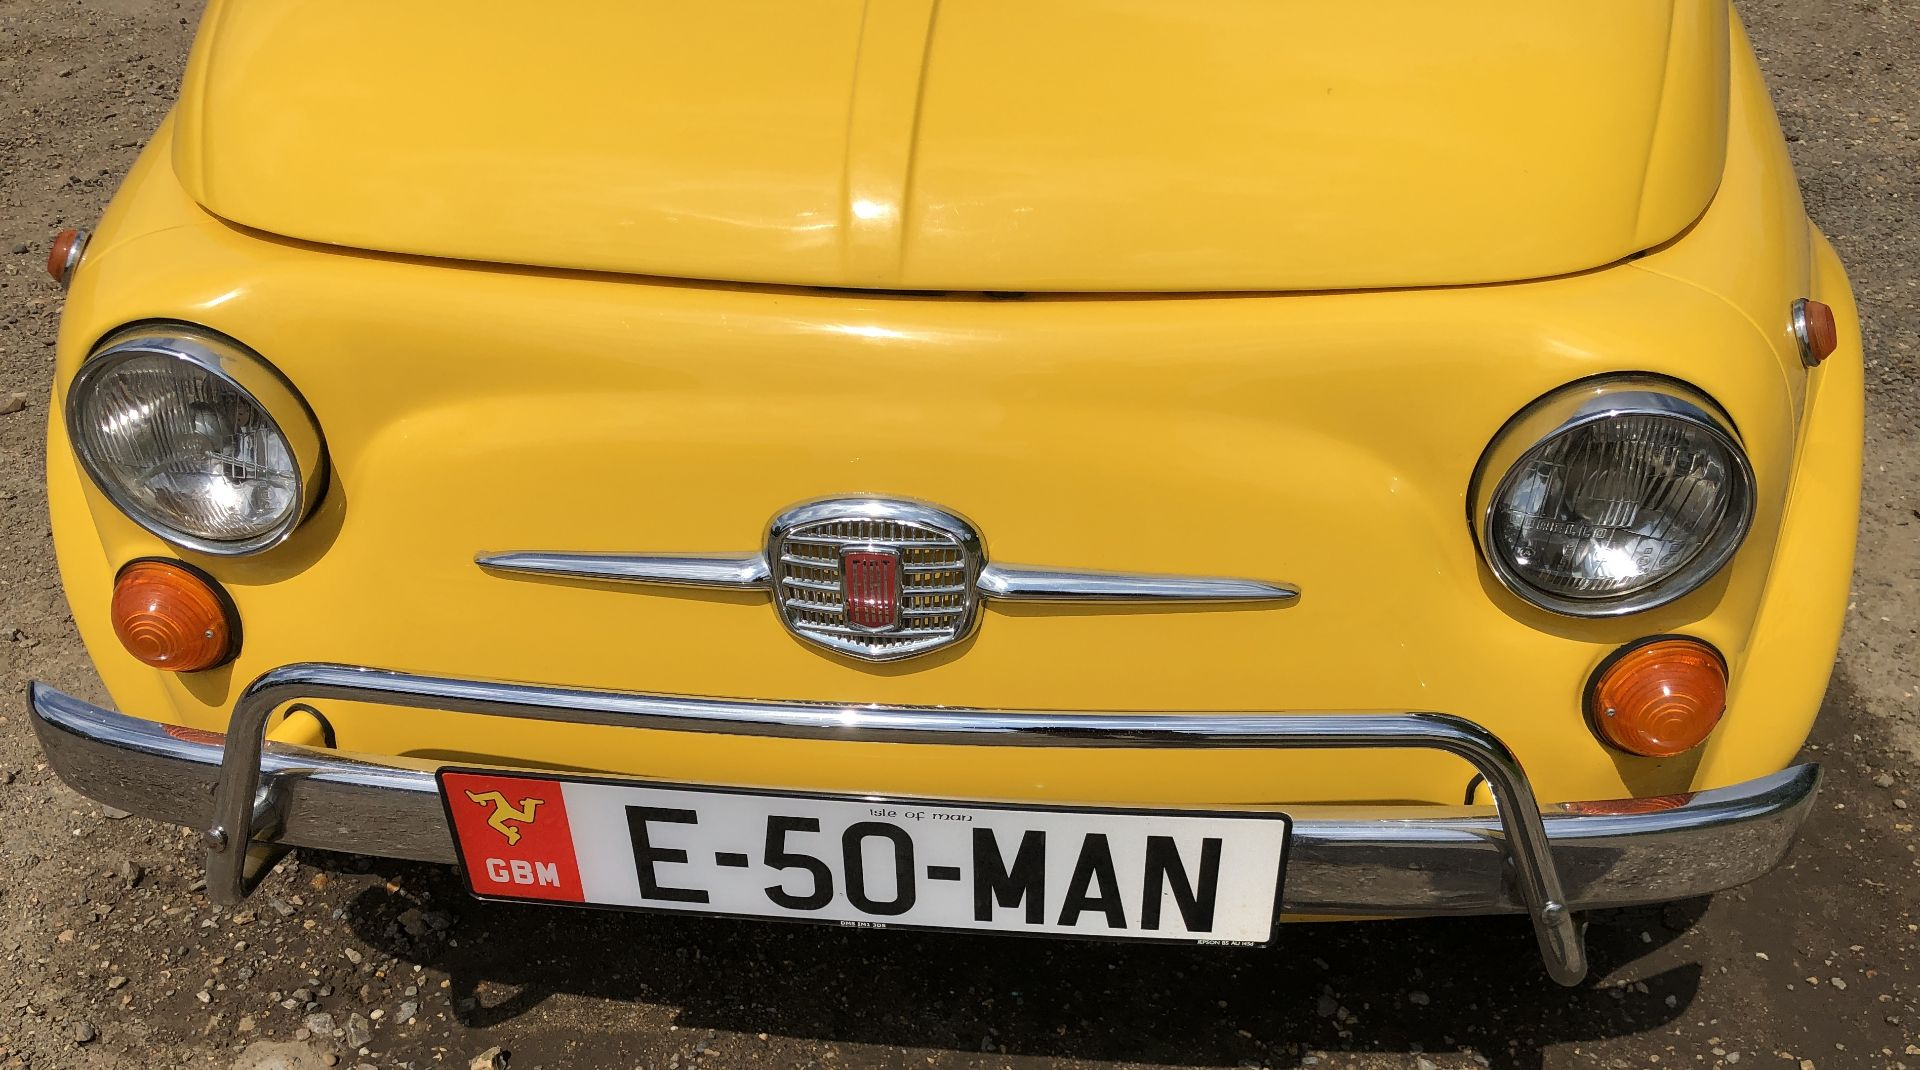 1972 Fiat 500 Saloon, Registration E-50-Man (IOM, Formally Registered as TGF 249L), First Registered - Image 10 of 34